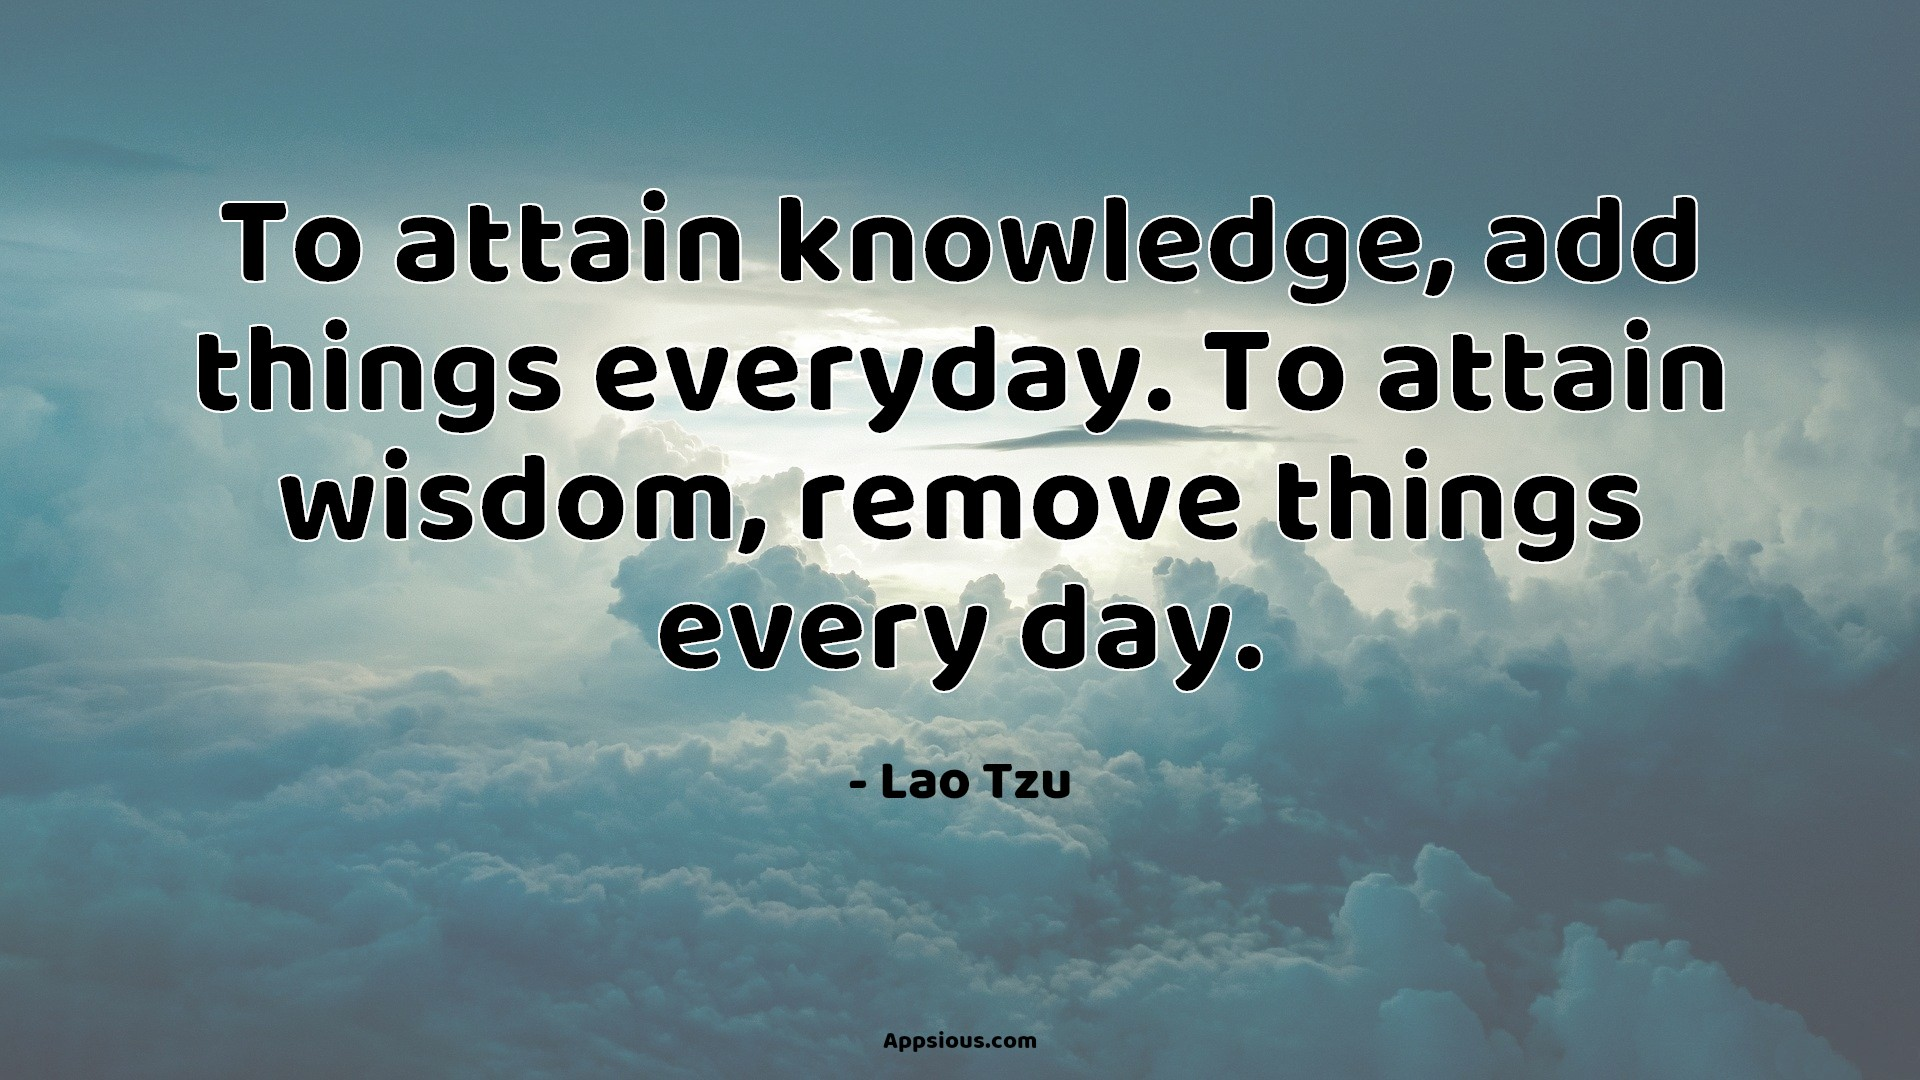 To attain knowledge, add things everyday. To attain wisdom, remove things every day.